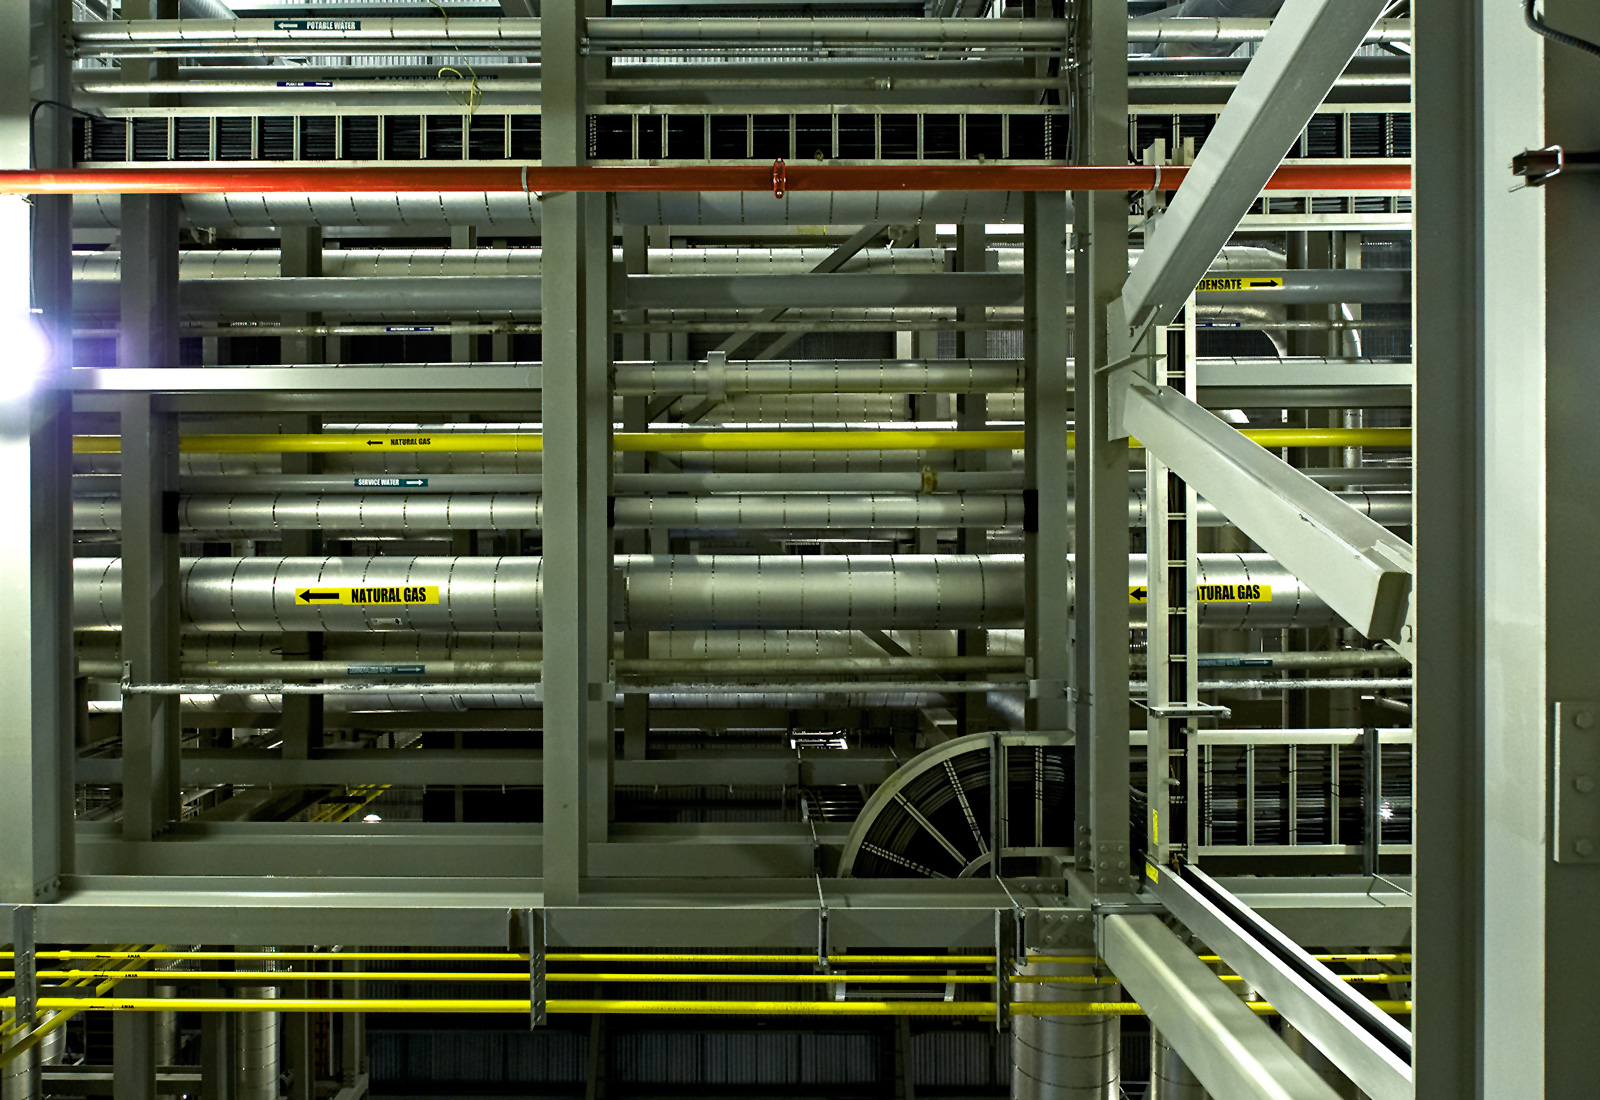 20140612. Above your head inside the Portlands Energy Centre (natural gas powerplant) in Toronto.